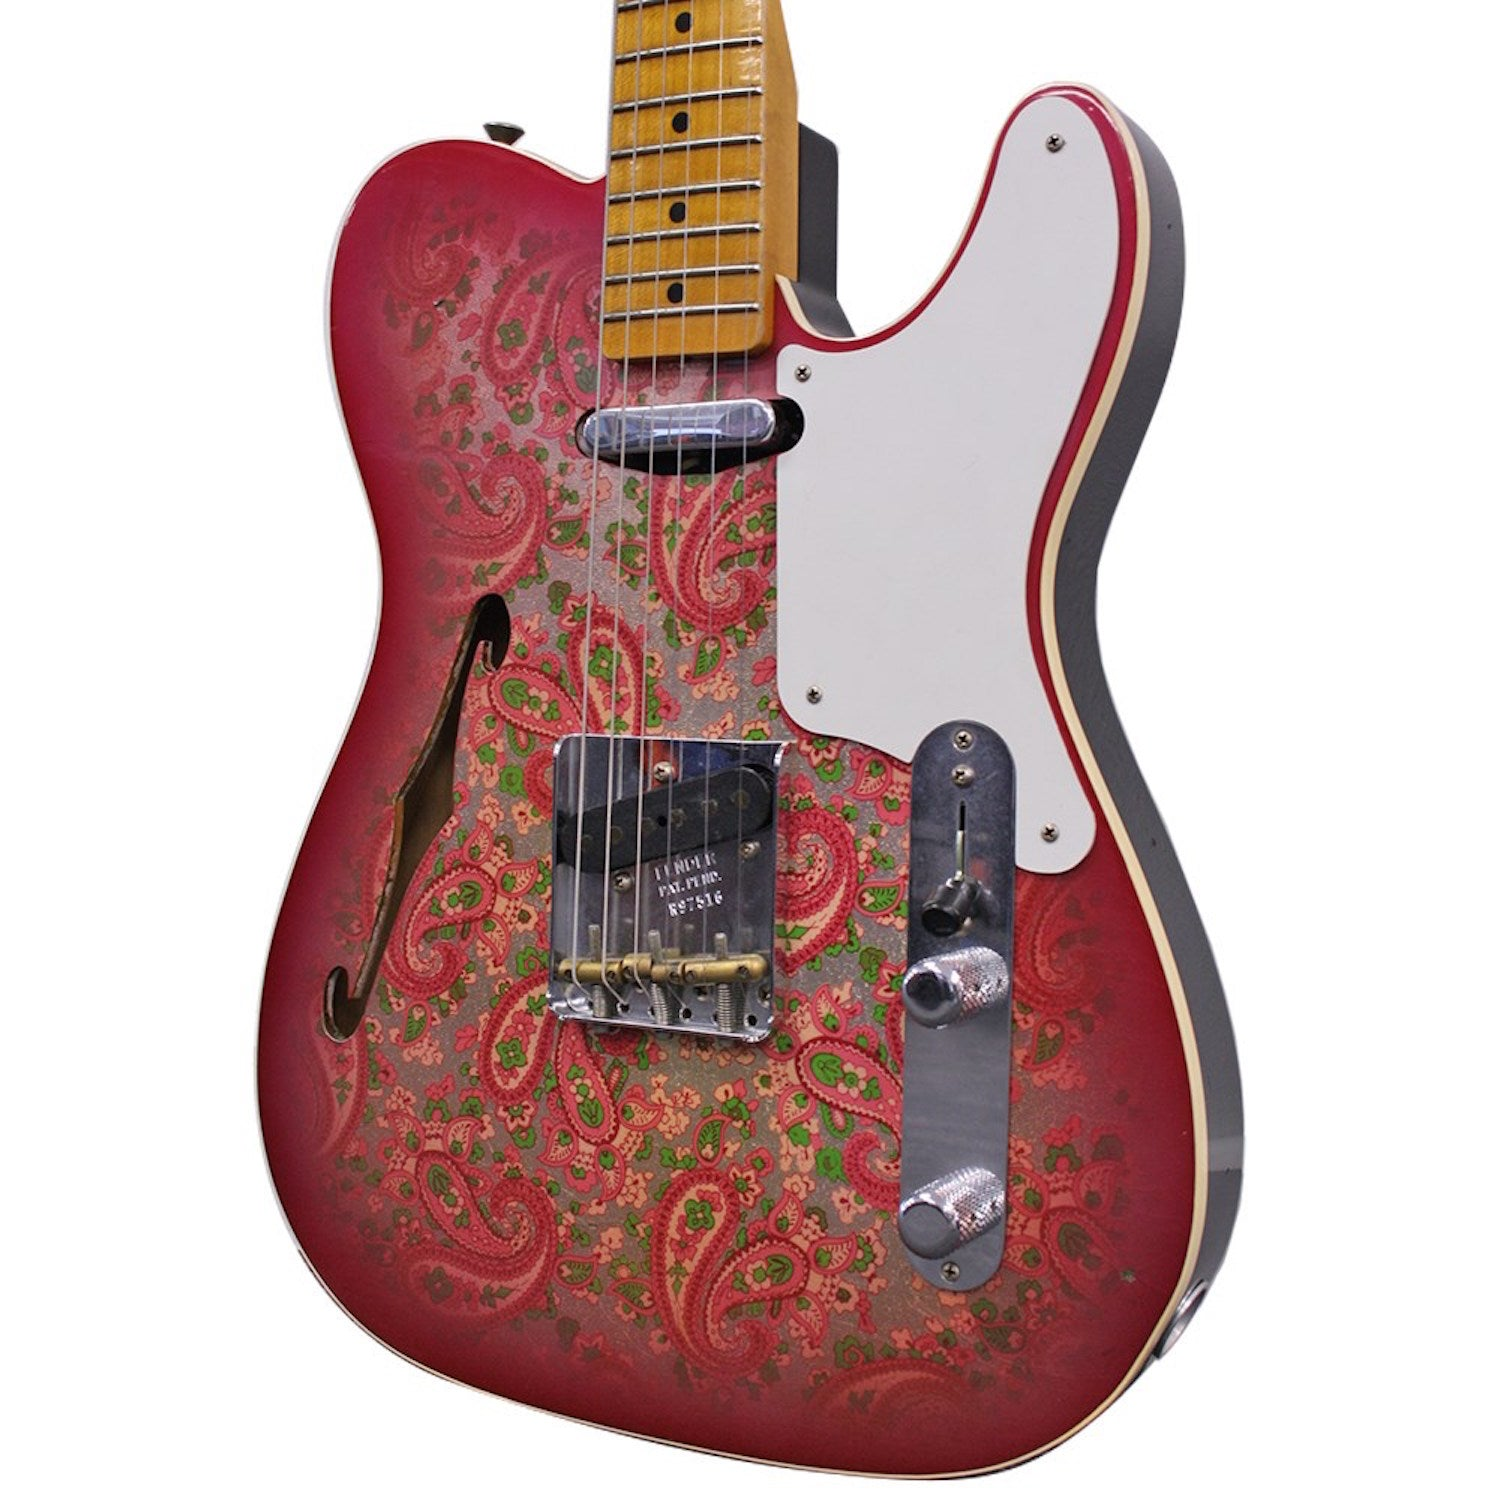 Fender Custom Shop Ltd Edition Roasted Pine Double Esquire Journeyman Relic Pink Paisley